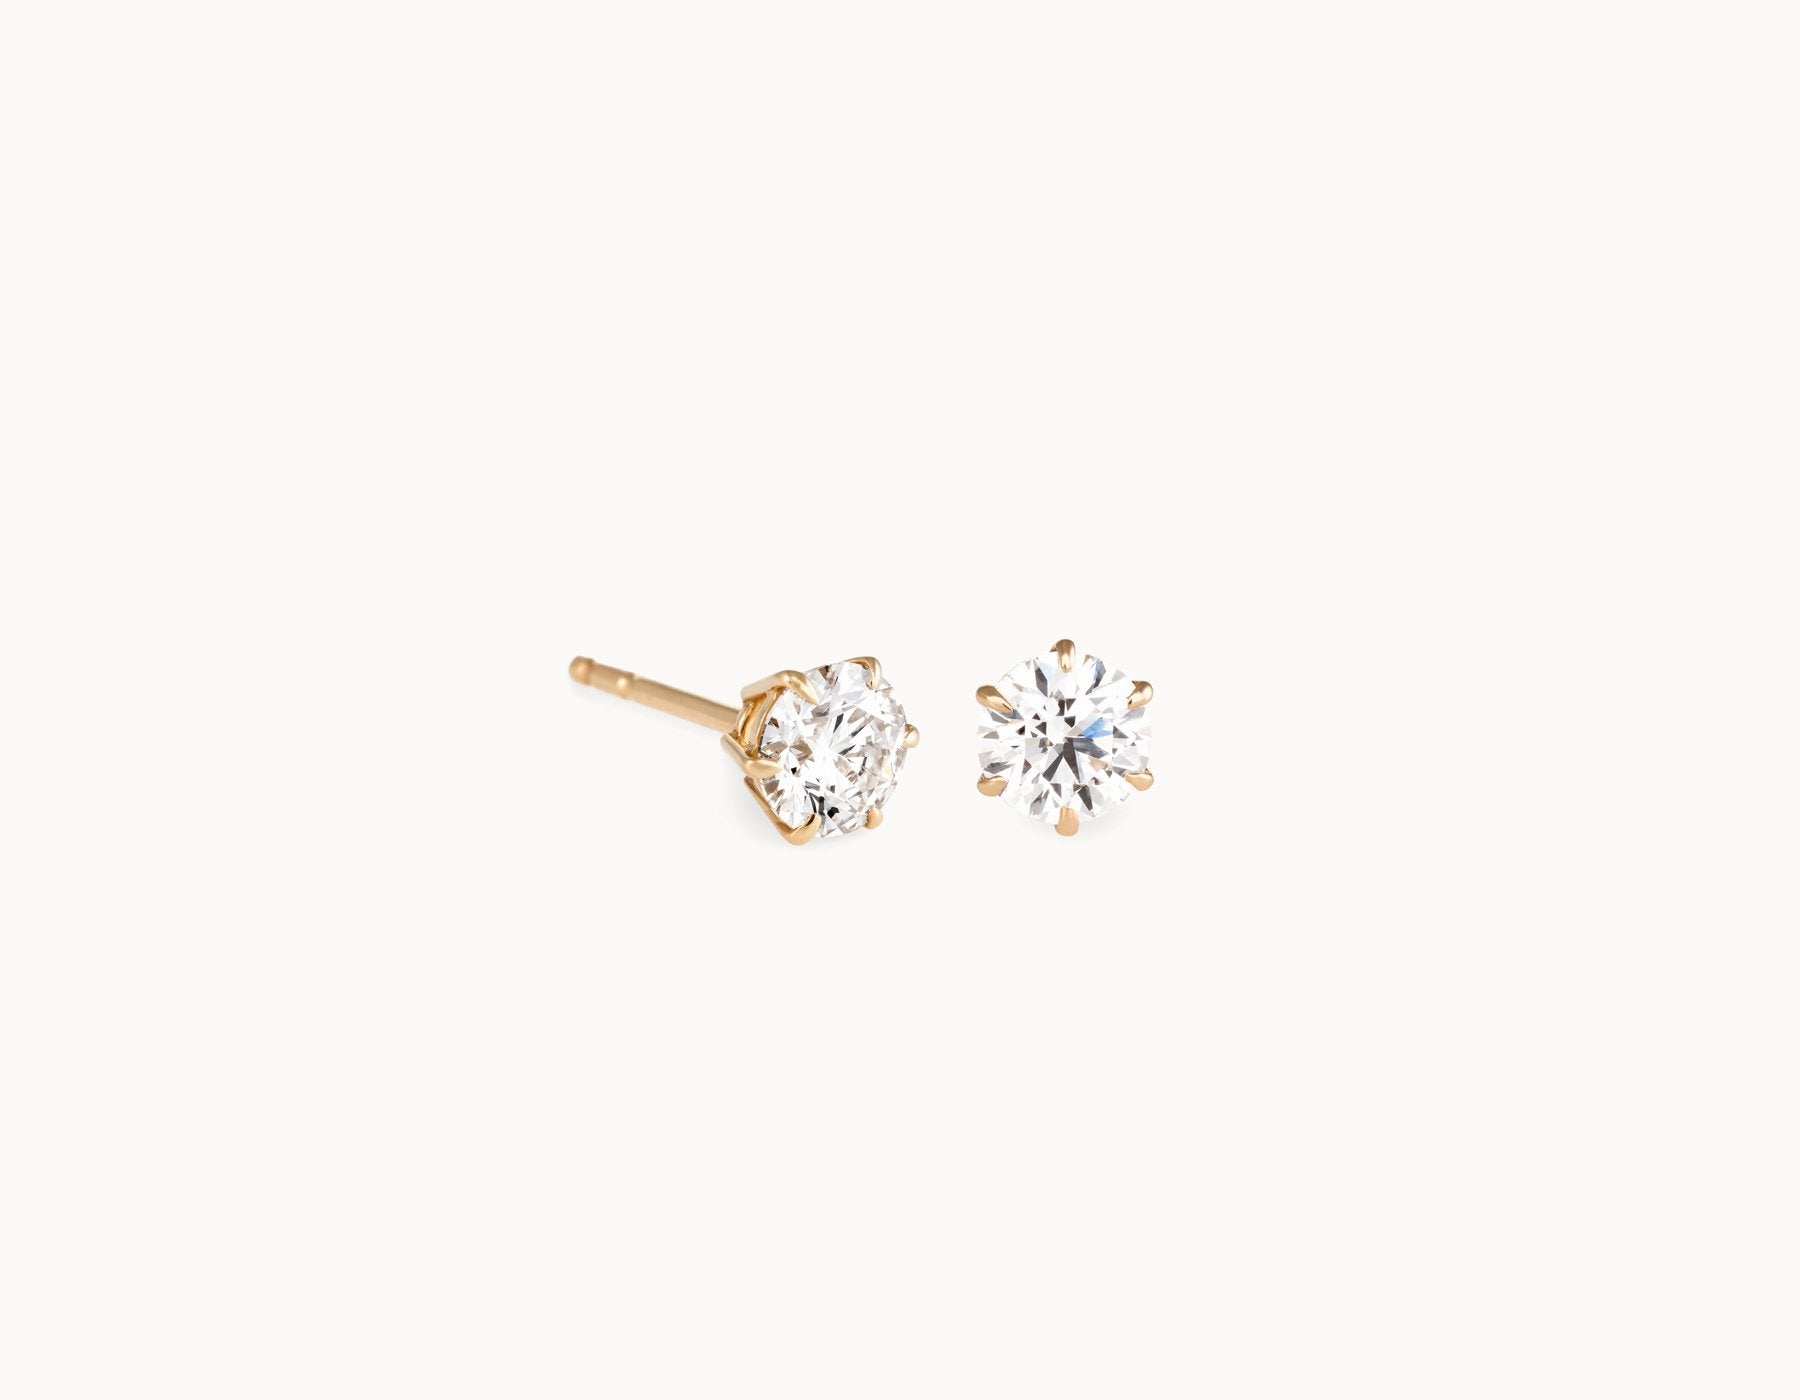 jewelry blue fit photos beautiful design with earring out the best blog ct diamond maize stud earrings